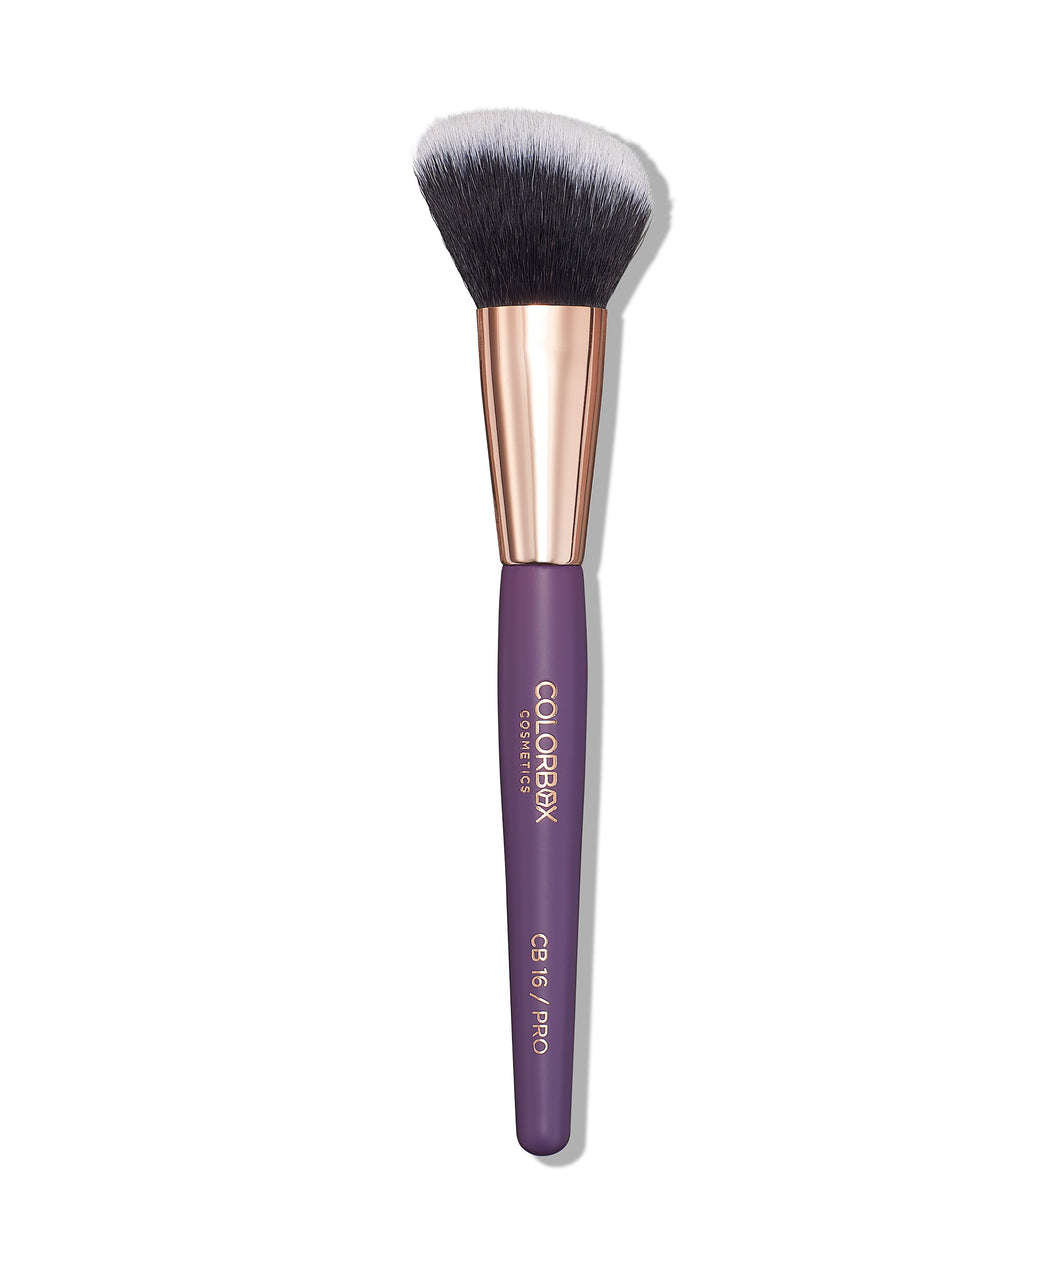 CB 16 / PRO – Sculpting Contour Brush